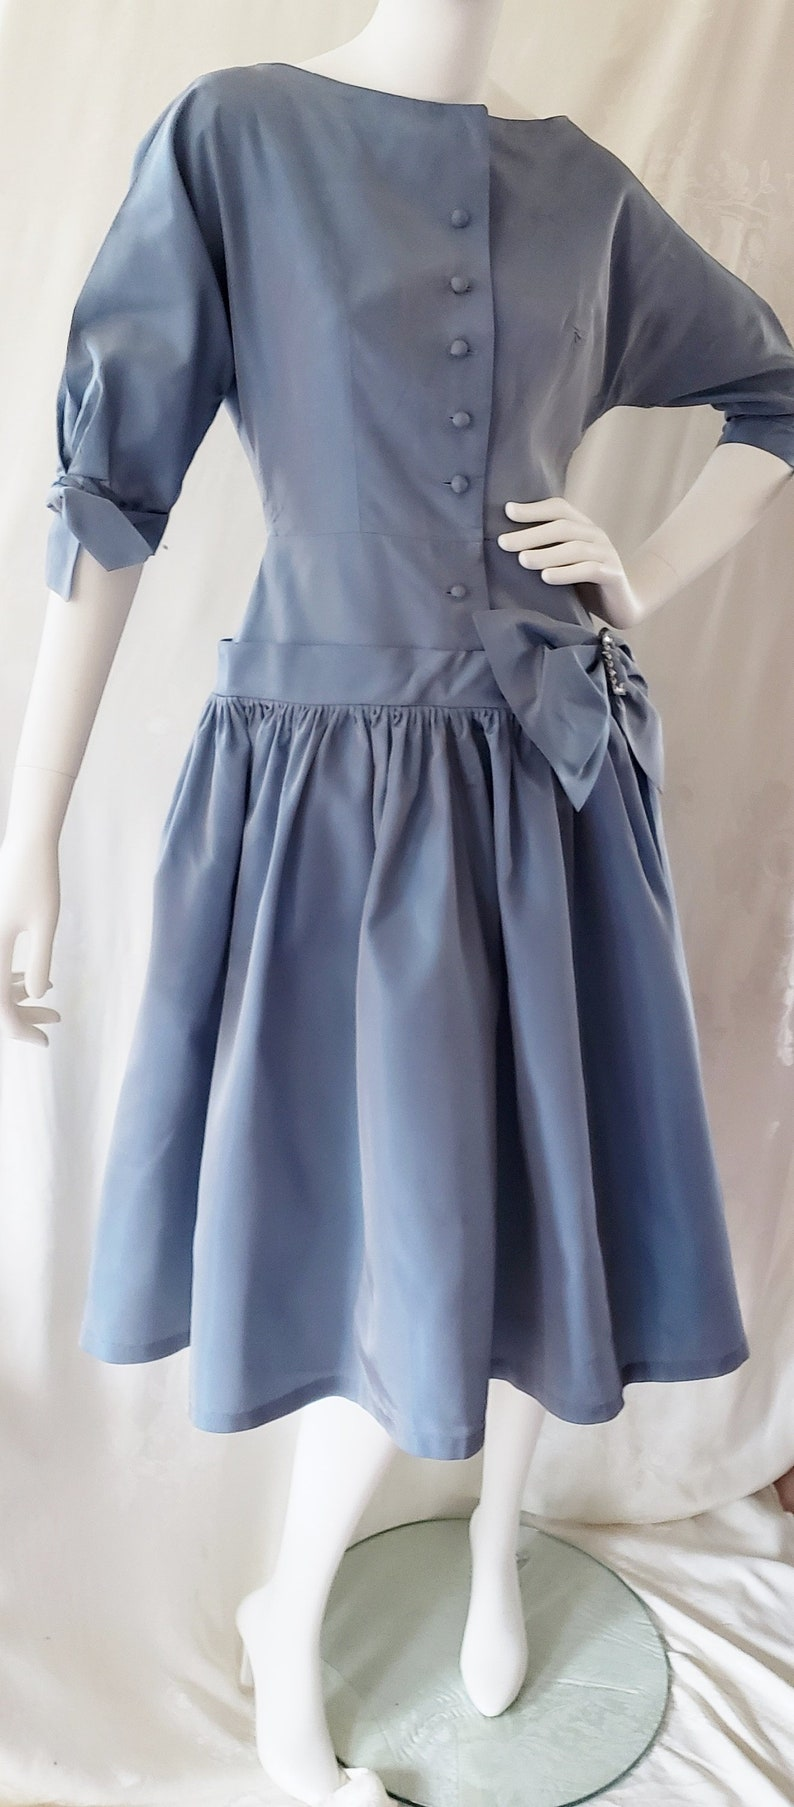 500 Vintage Style Dresses for Sale | Vintage Inspired Dresses Oh So CHIC Blue 1950s Party Dress SophisticatedLaRue $78.00 AT vintagedancer.com